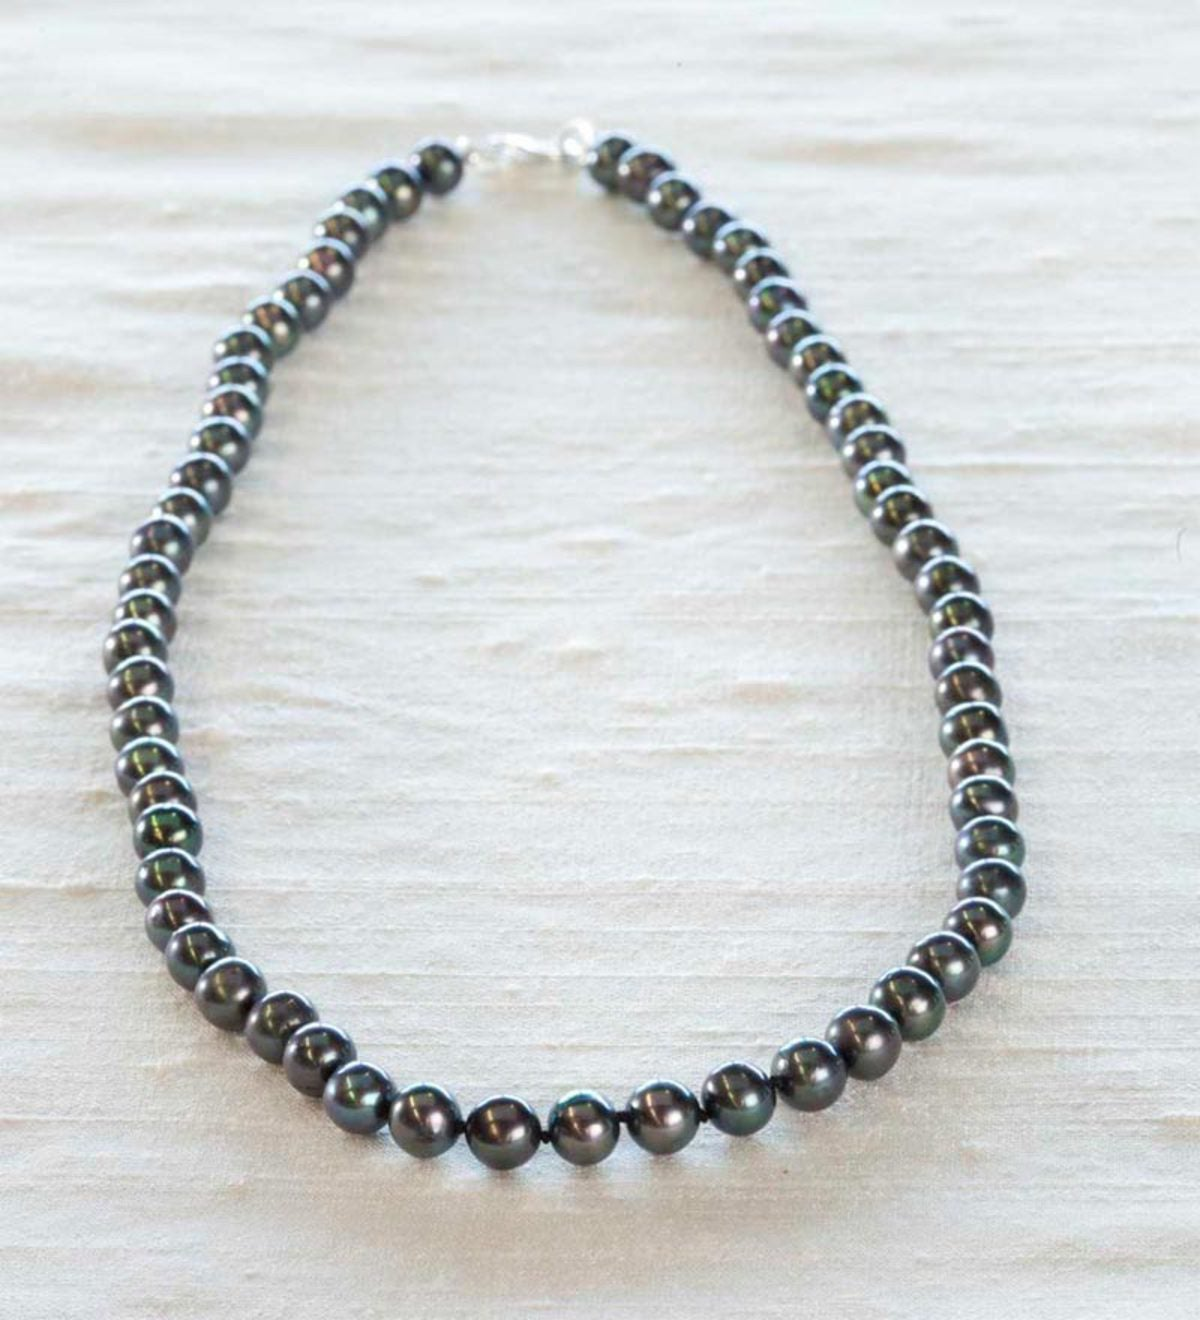 High Lustrous Near Round Freshwater Pearl Necklace - Dyed Black